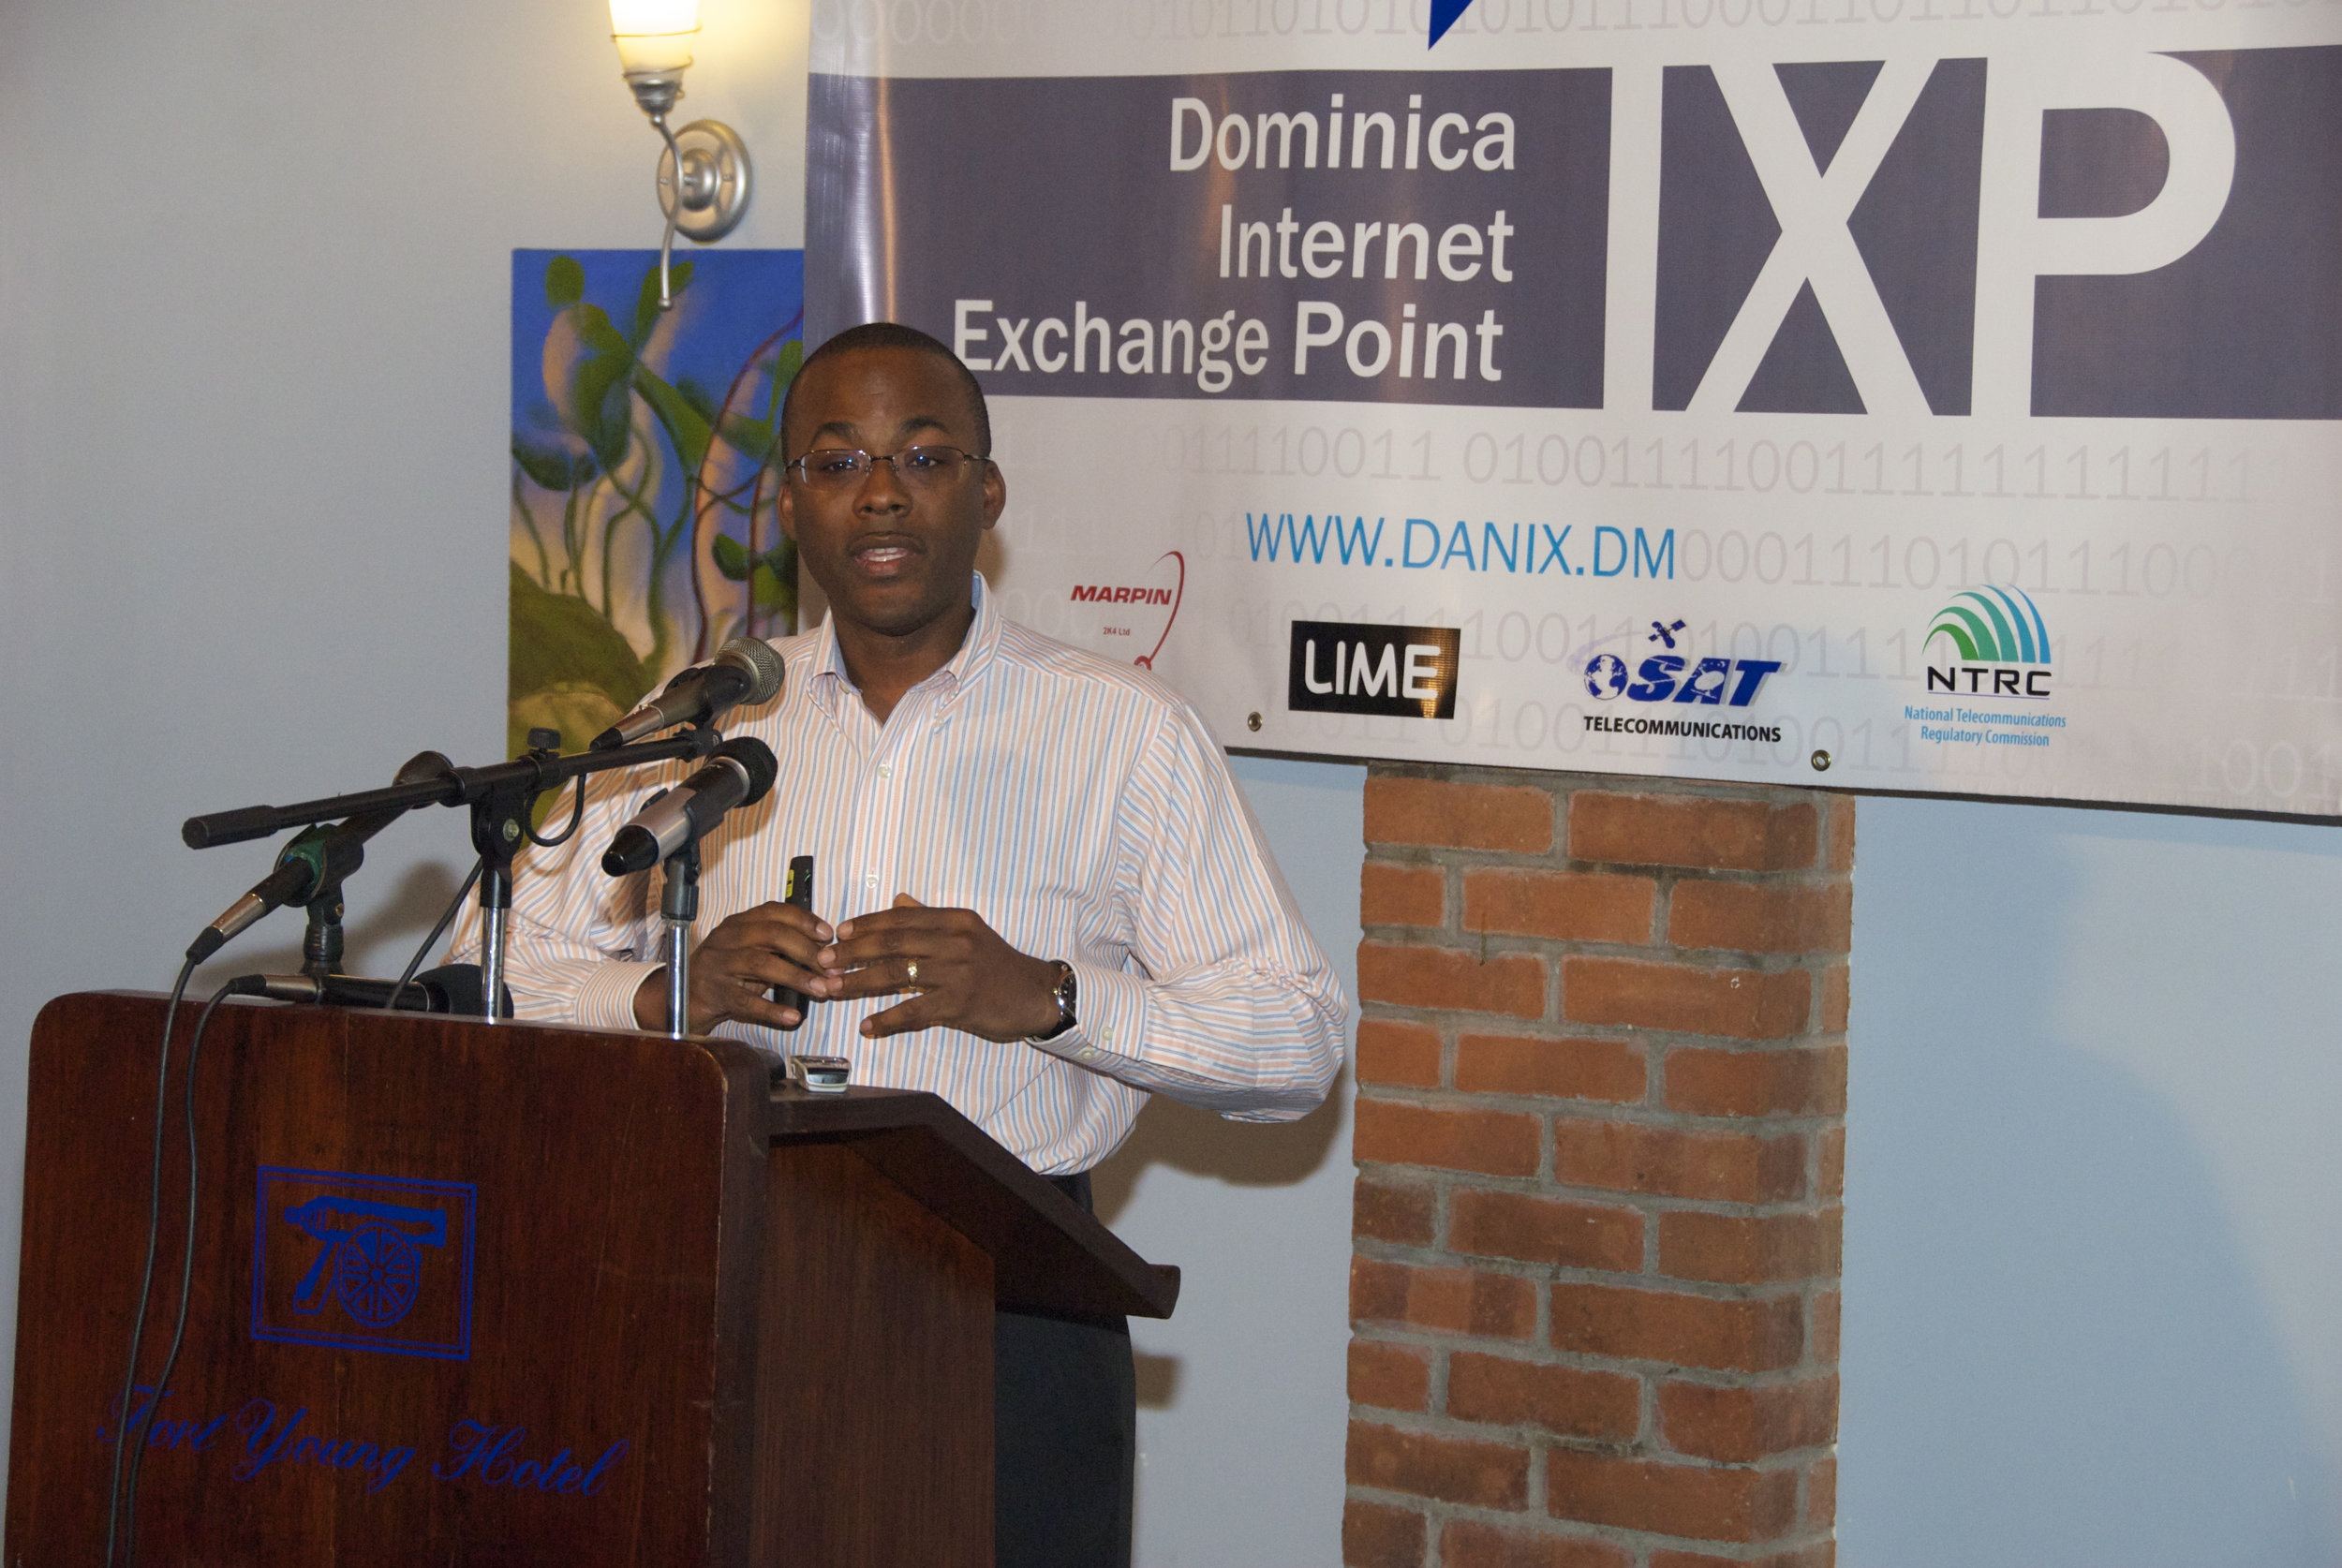 Bevil Wooding, Internet Strategist, Packet Clearing House delivers feature address at DANIX launch, February 2013.